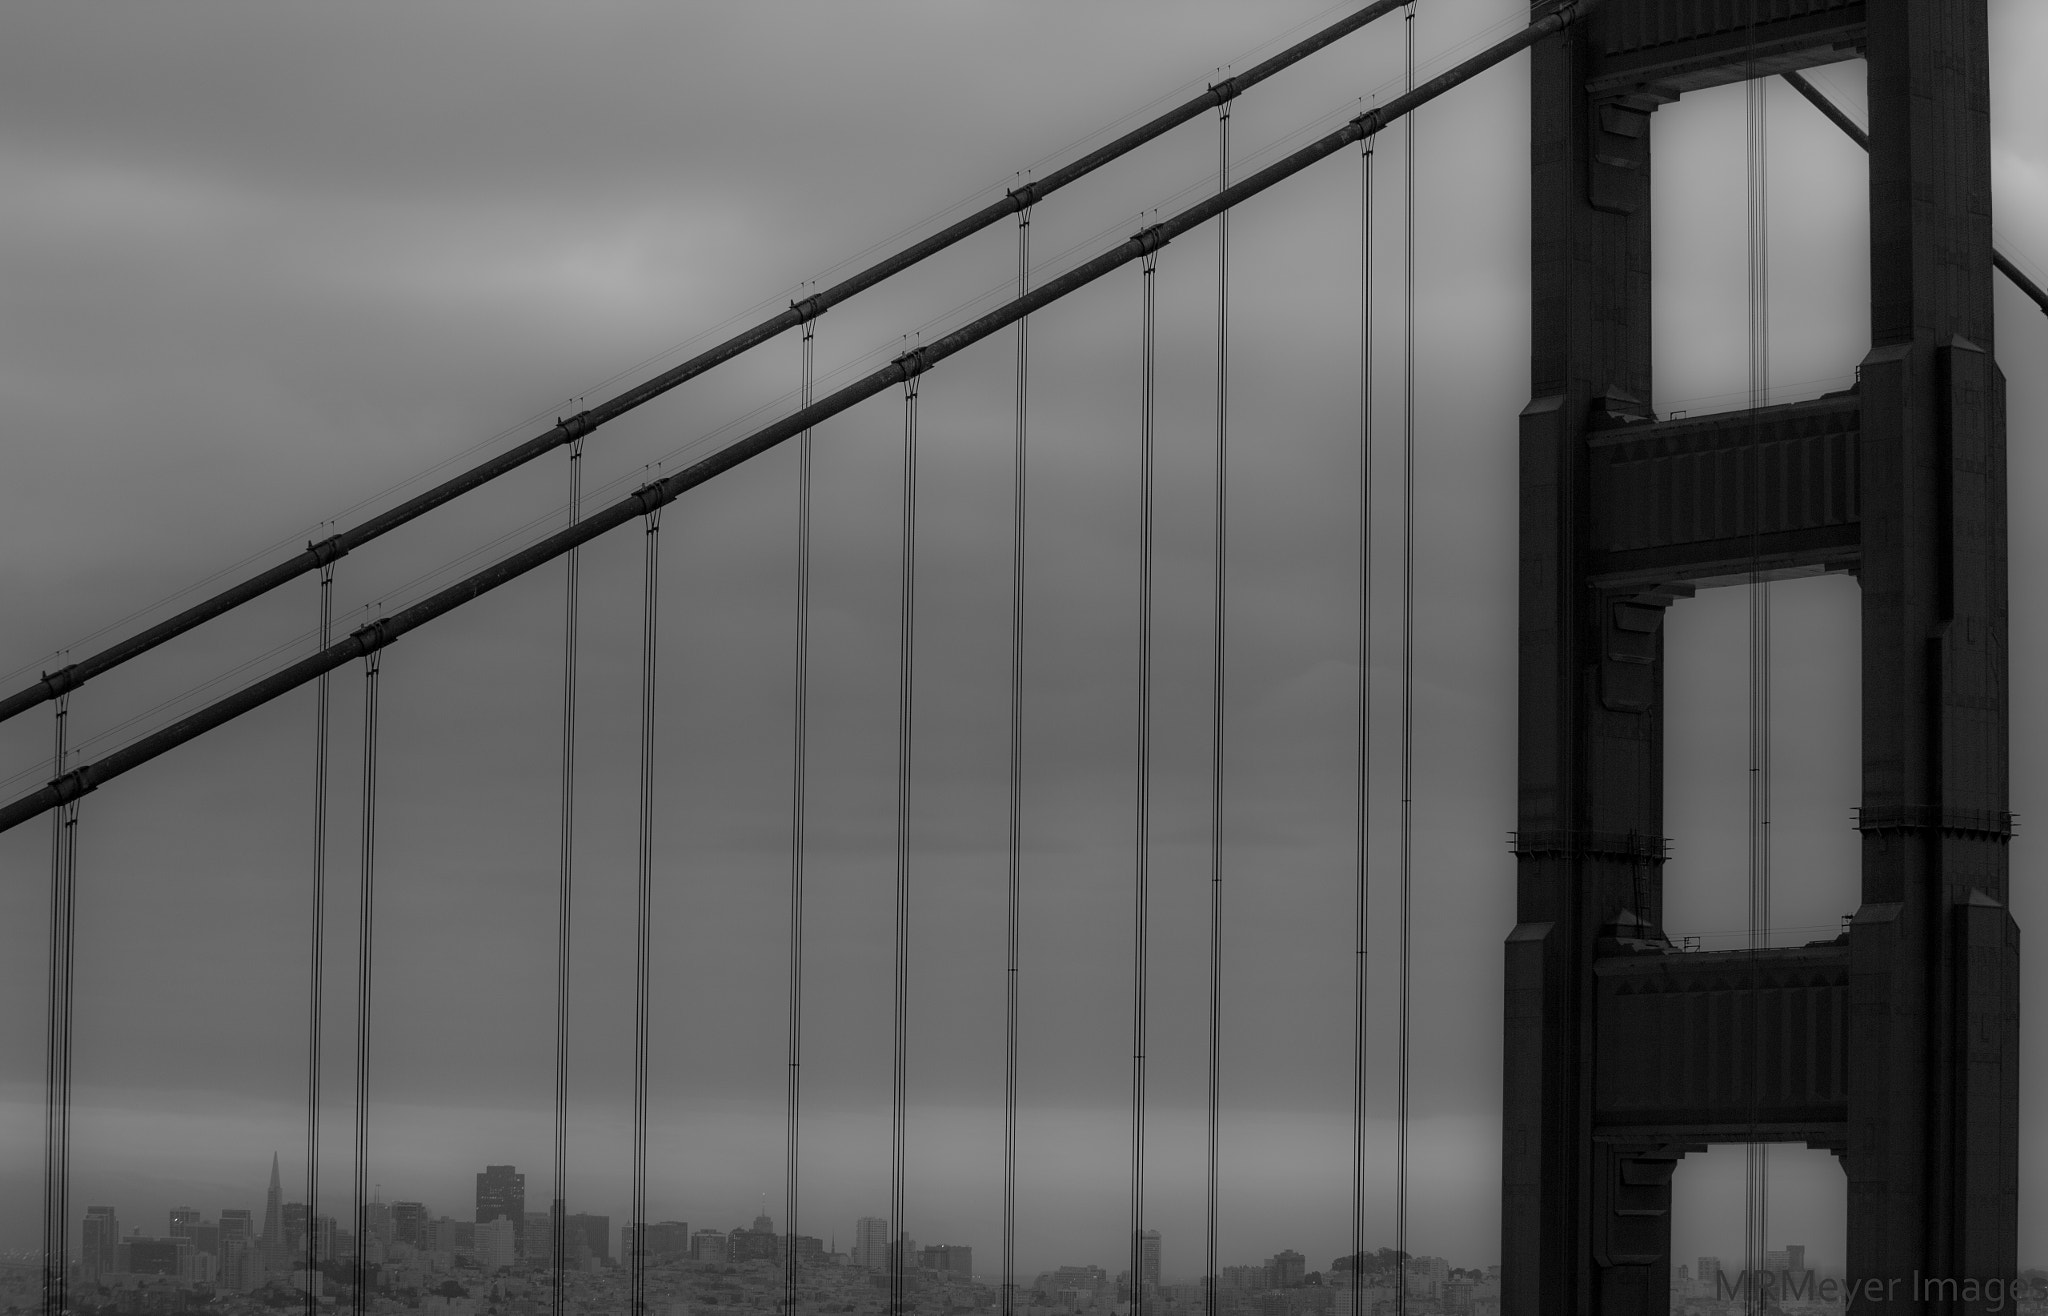 Photograph San Francisco Icon by Mark Meyer on 500px